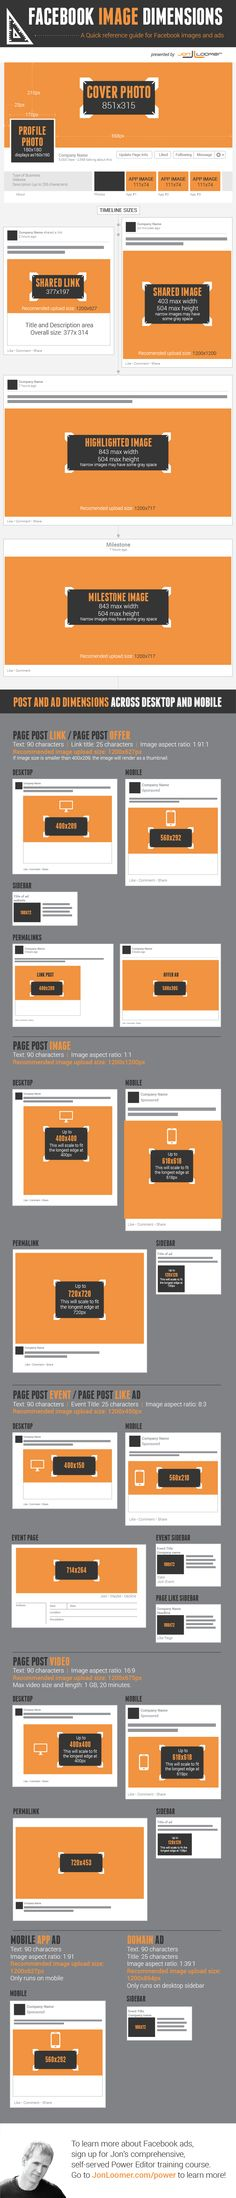 16 Awesome Facebook Marketing Infographics to ROCK Your World